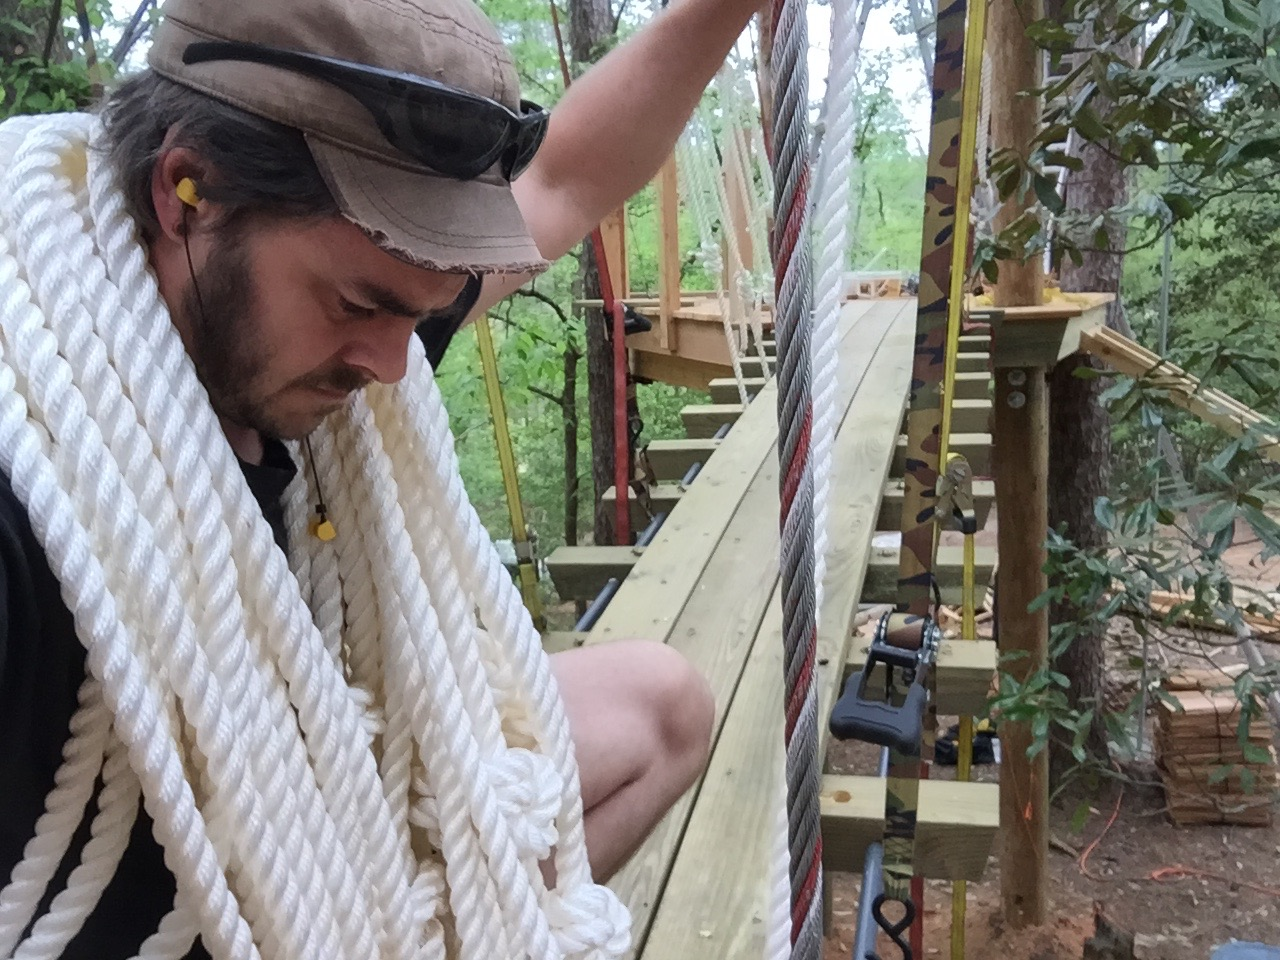 Seanix is one of our master riggers. If irritable, Seanix can be calmed by unraveling a tangled mess of rope.